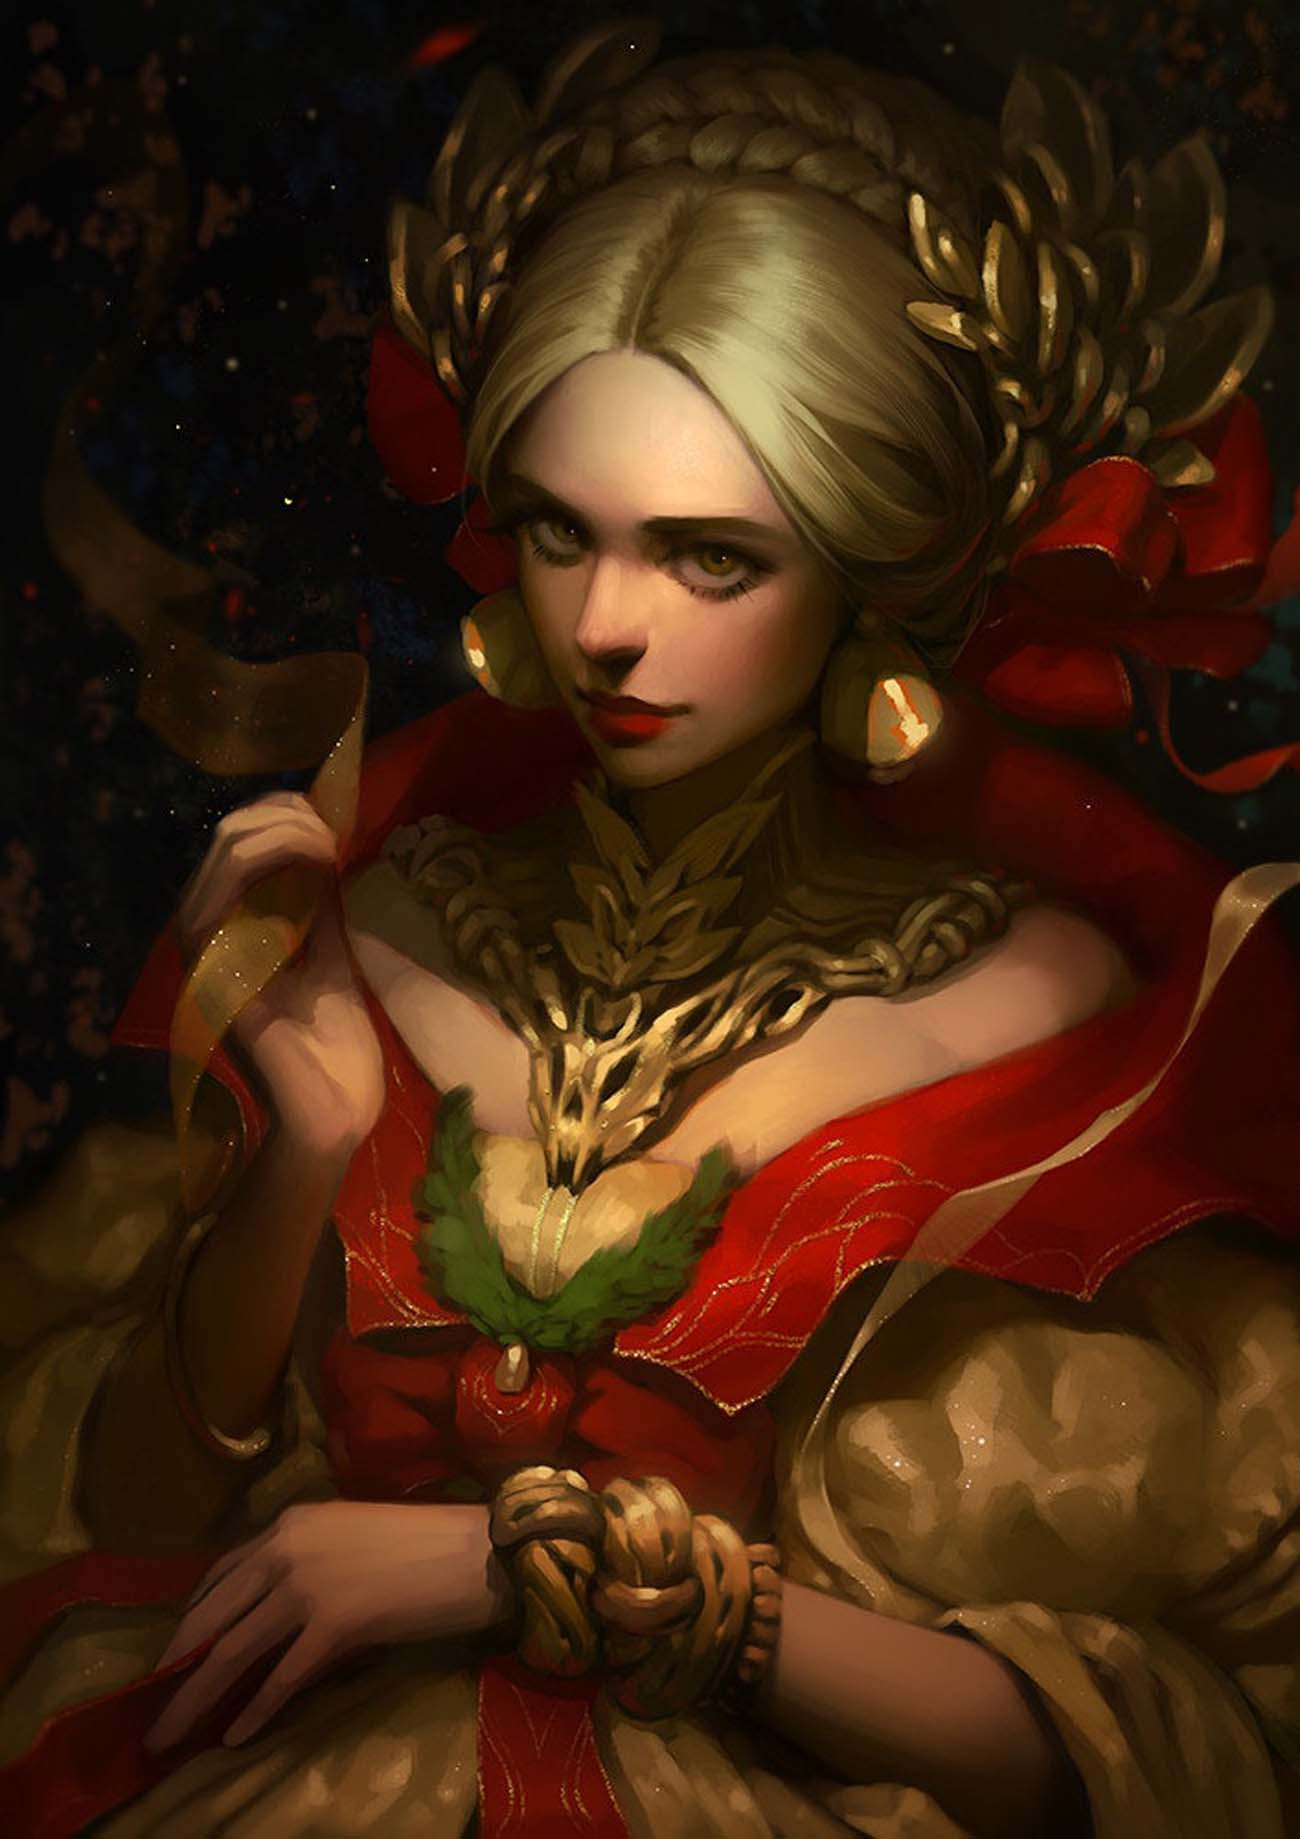 Svetlana Tigai | Paintable.cc Digital Painting Inspiration - Learn the Art of Digital Painting! #digitalpainting #digitalart